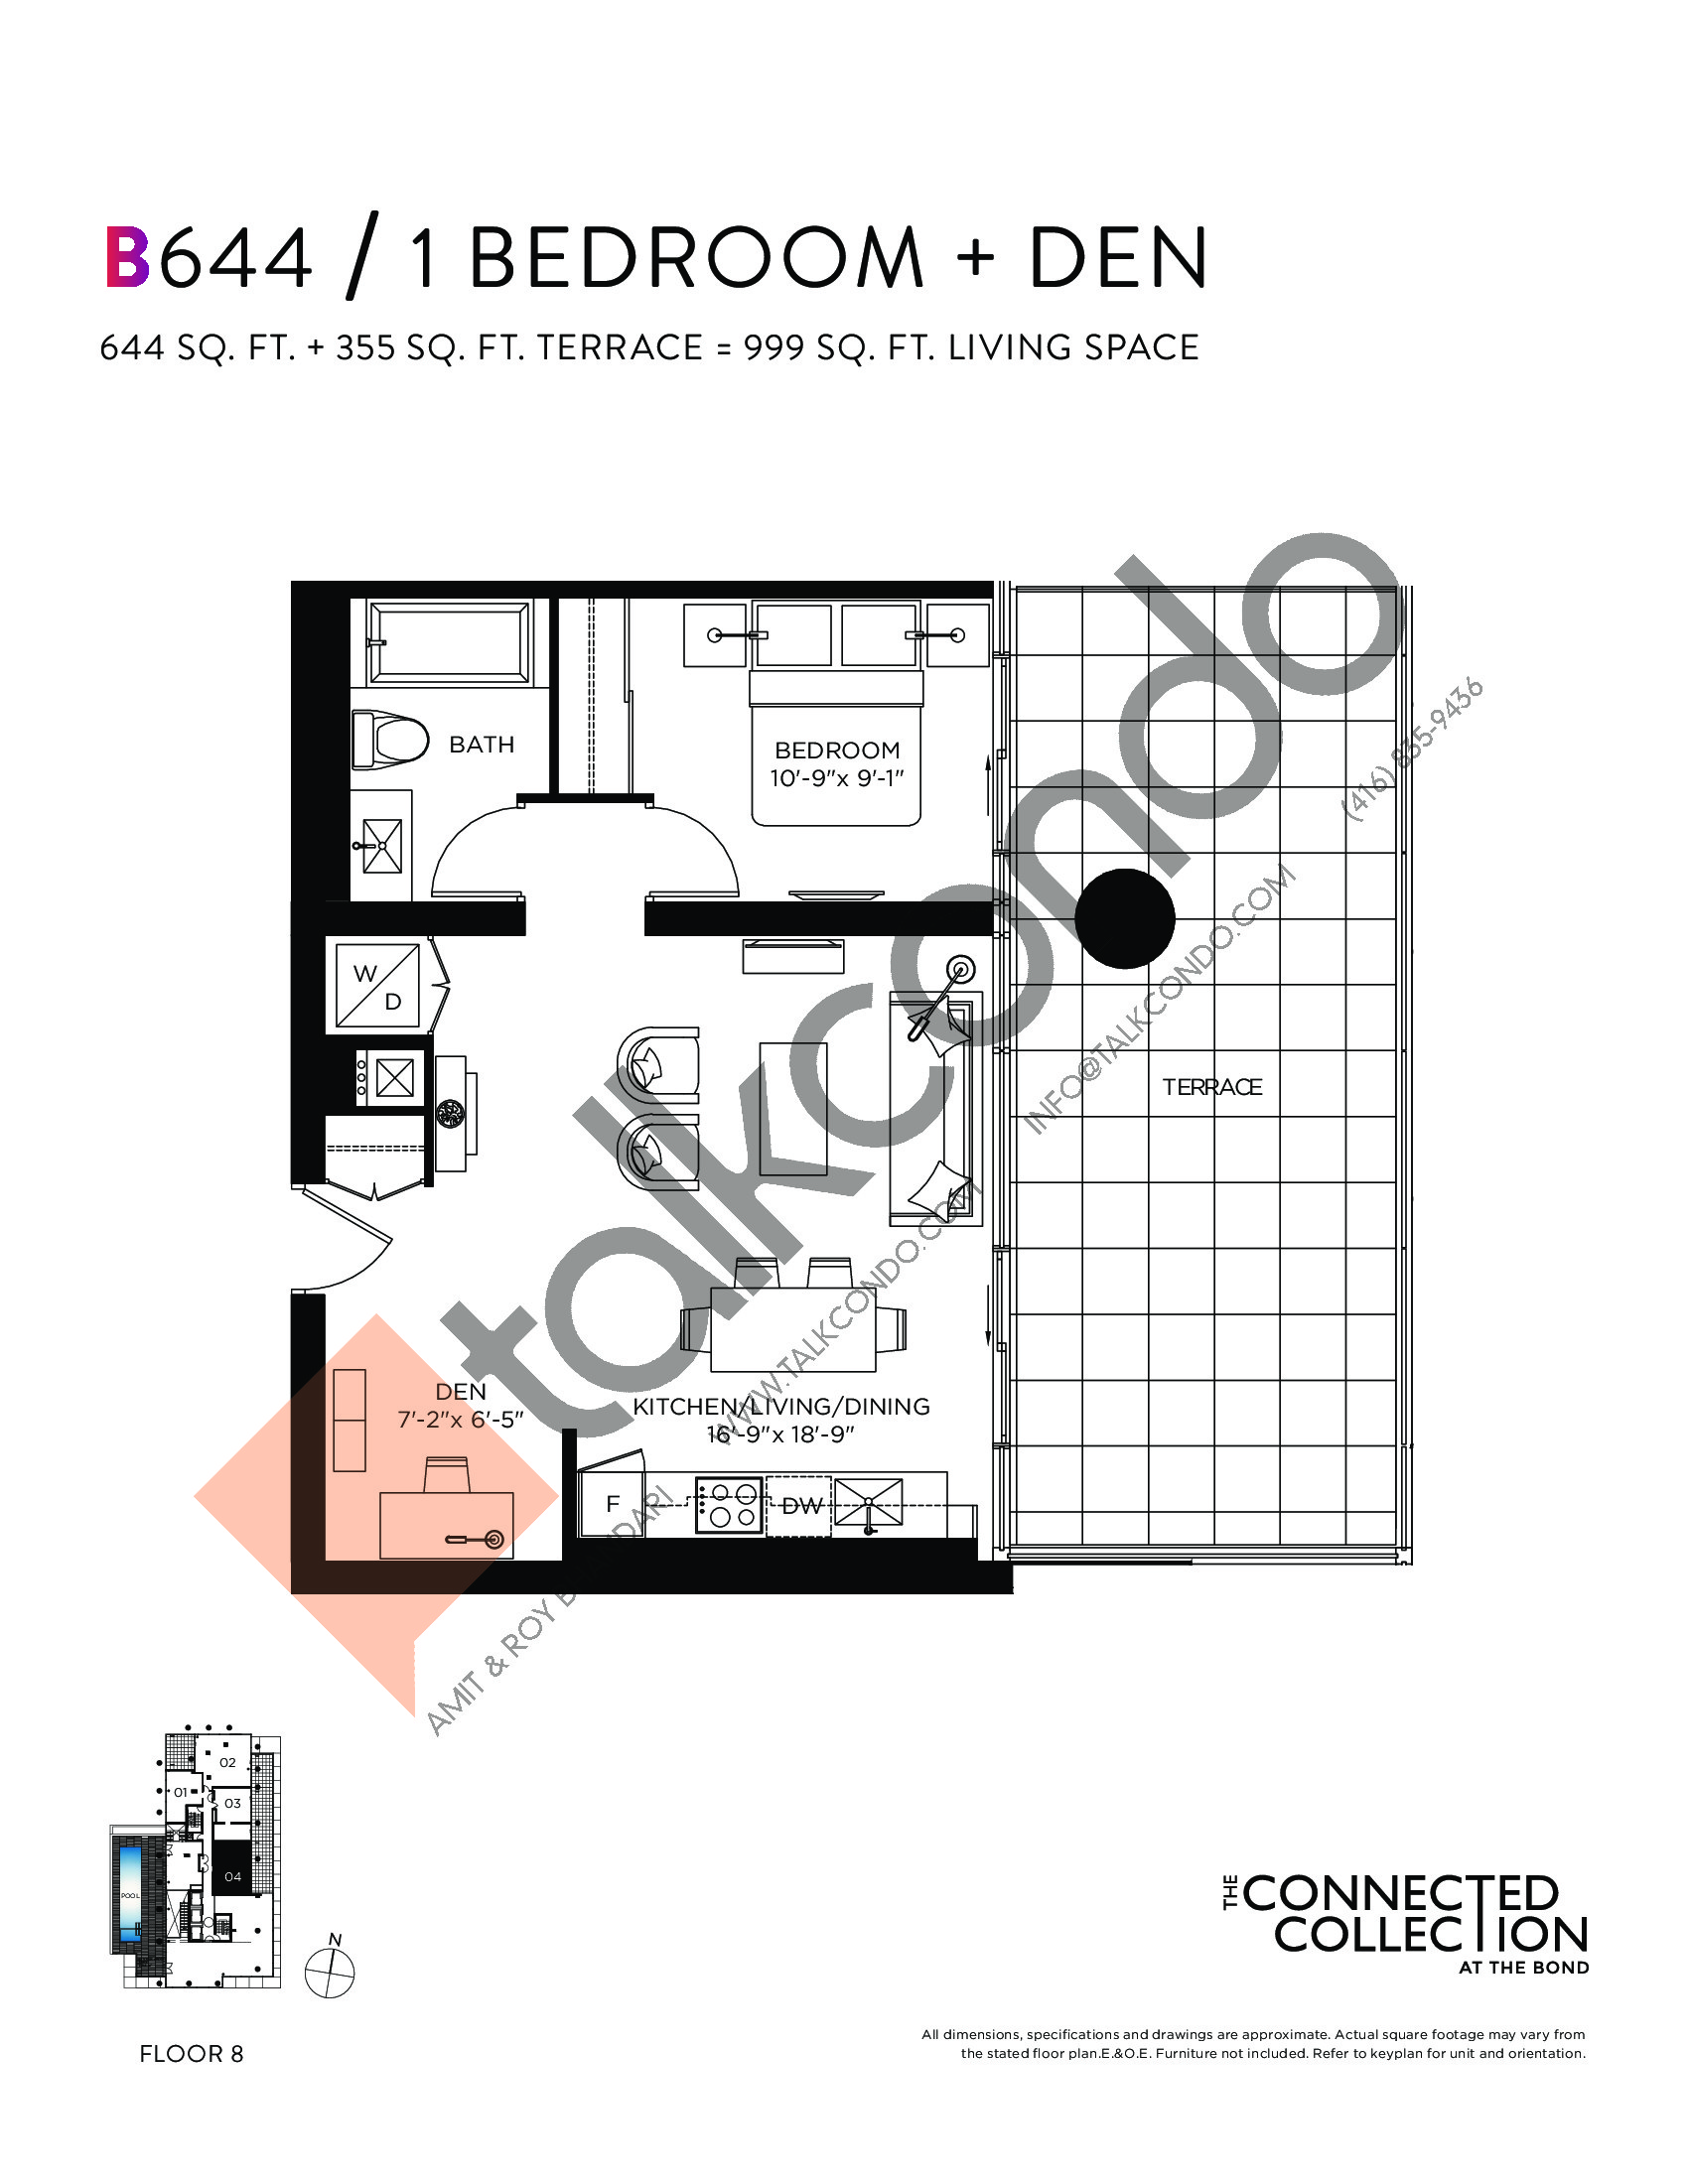 The Bond Condos Floor Plans Prices Availability